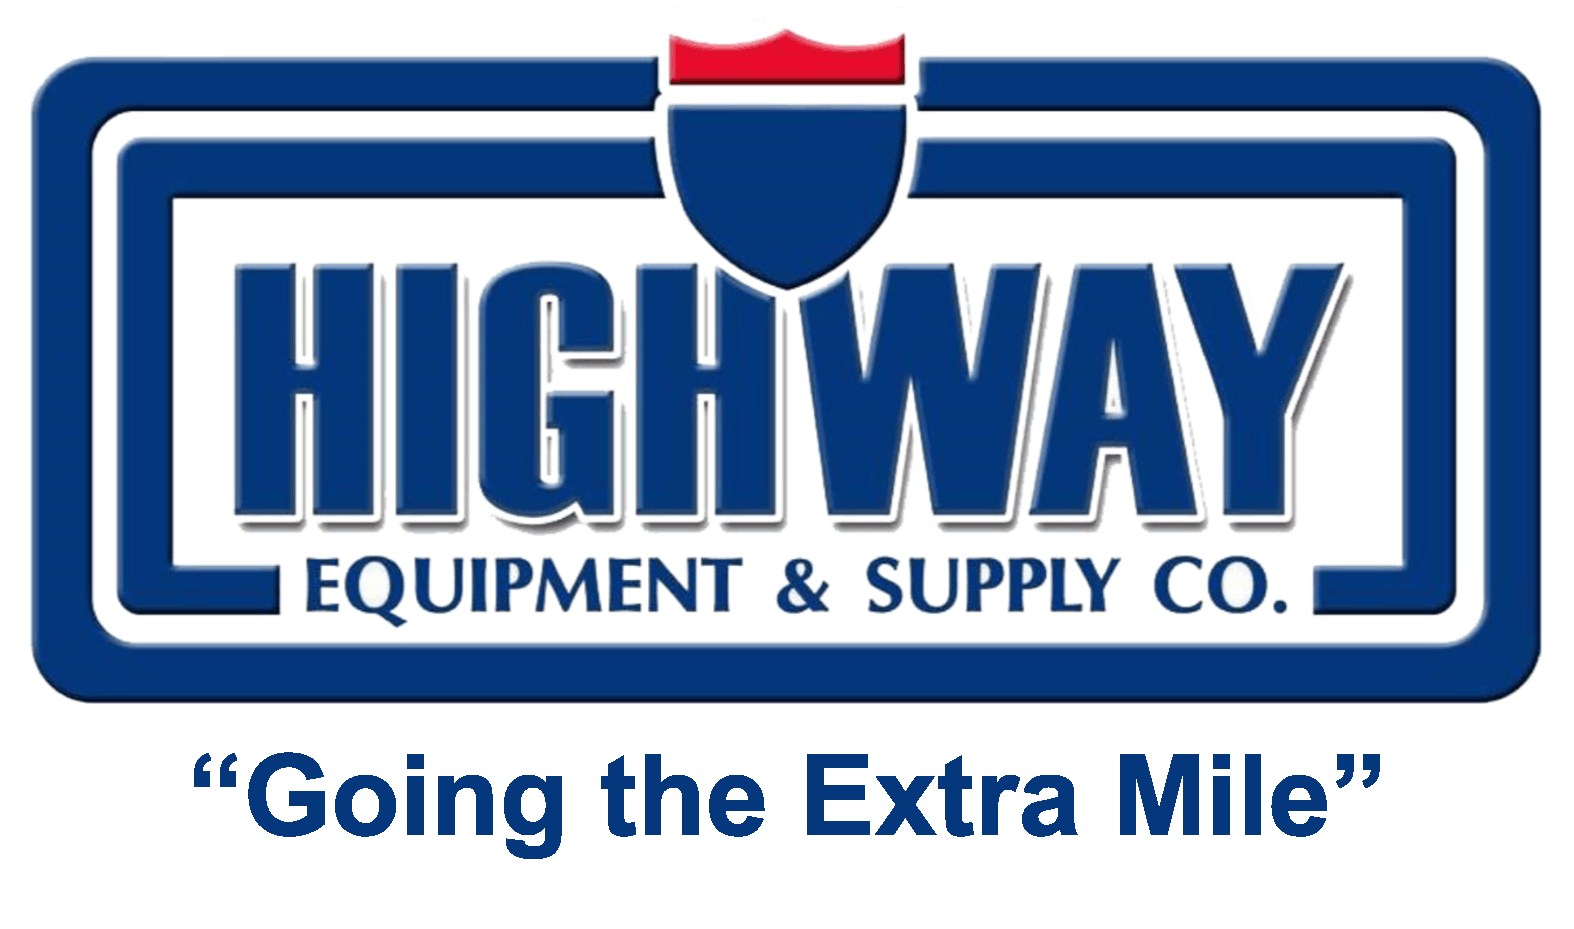 Company logo for 'Highway Equipment & Supply'.